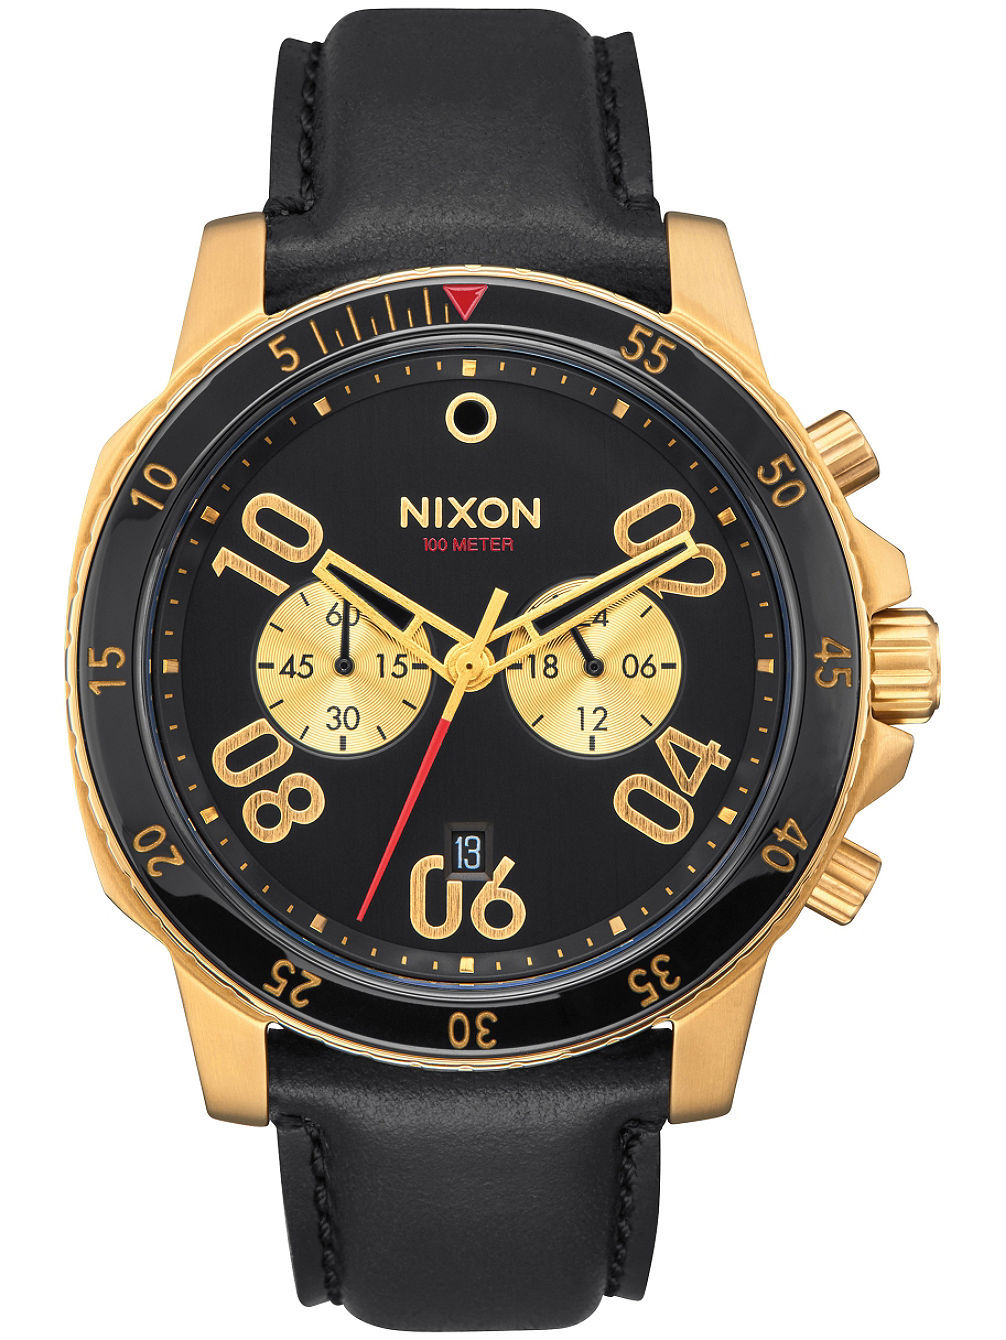 The Ranger Chrono Leather